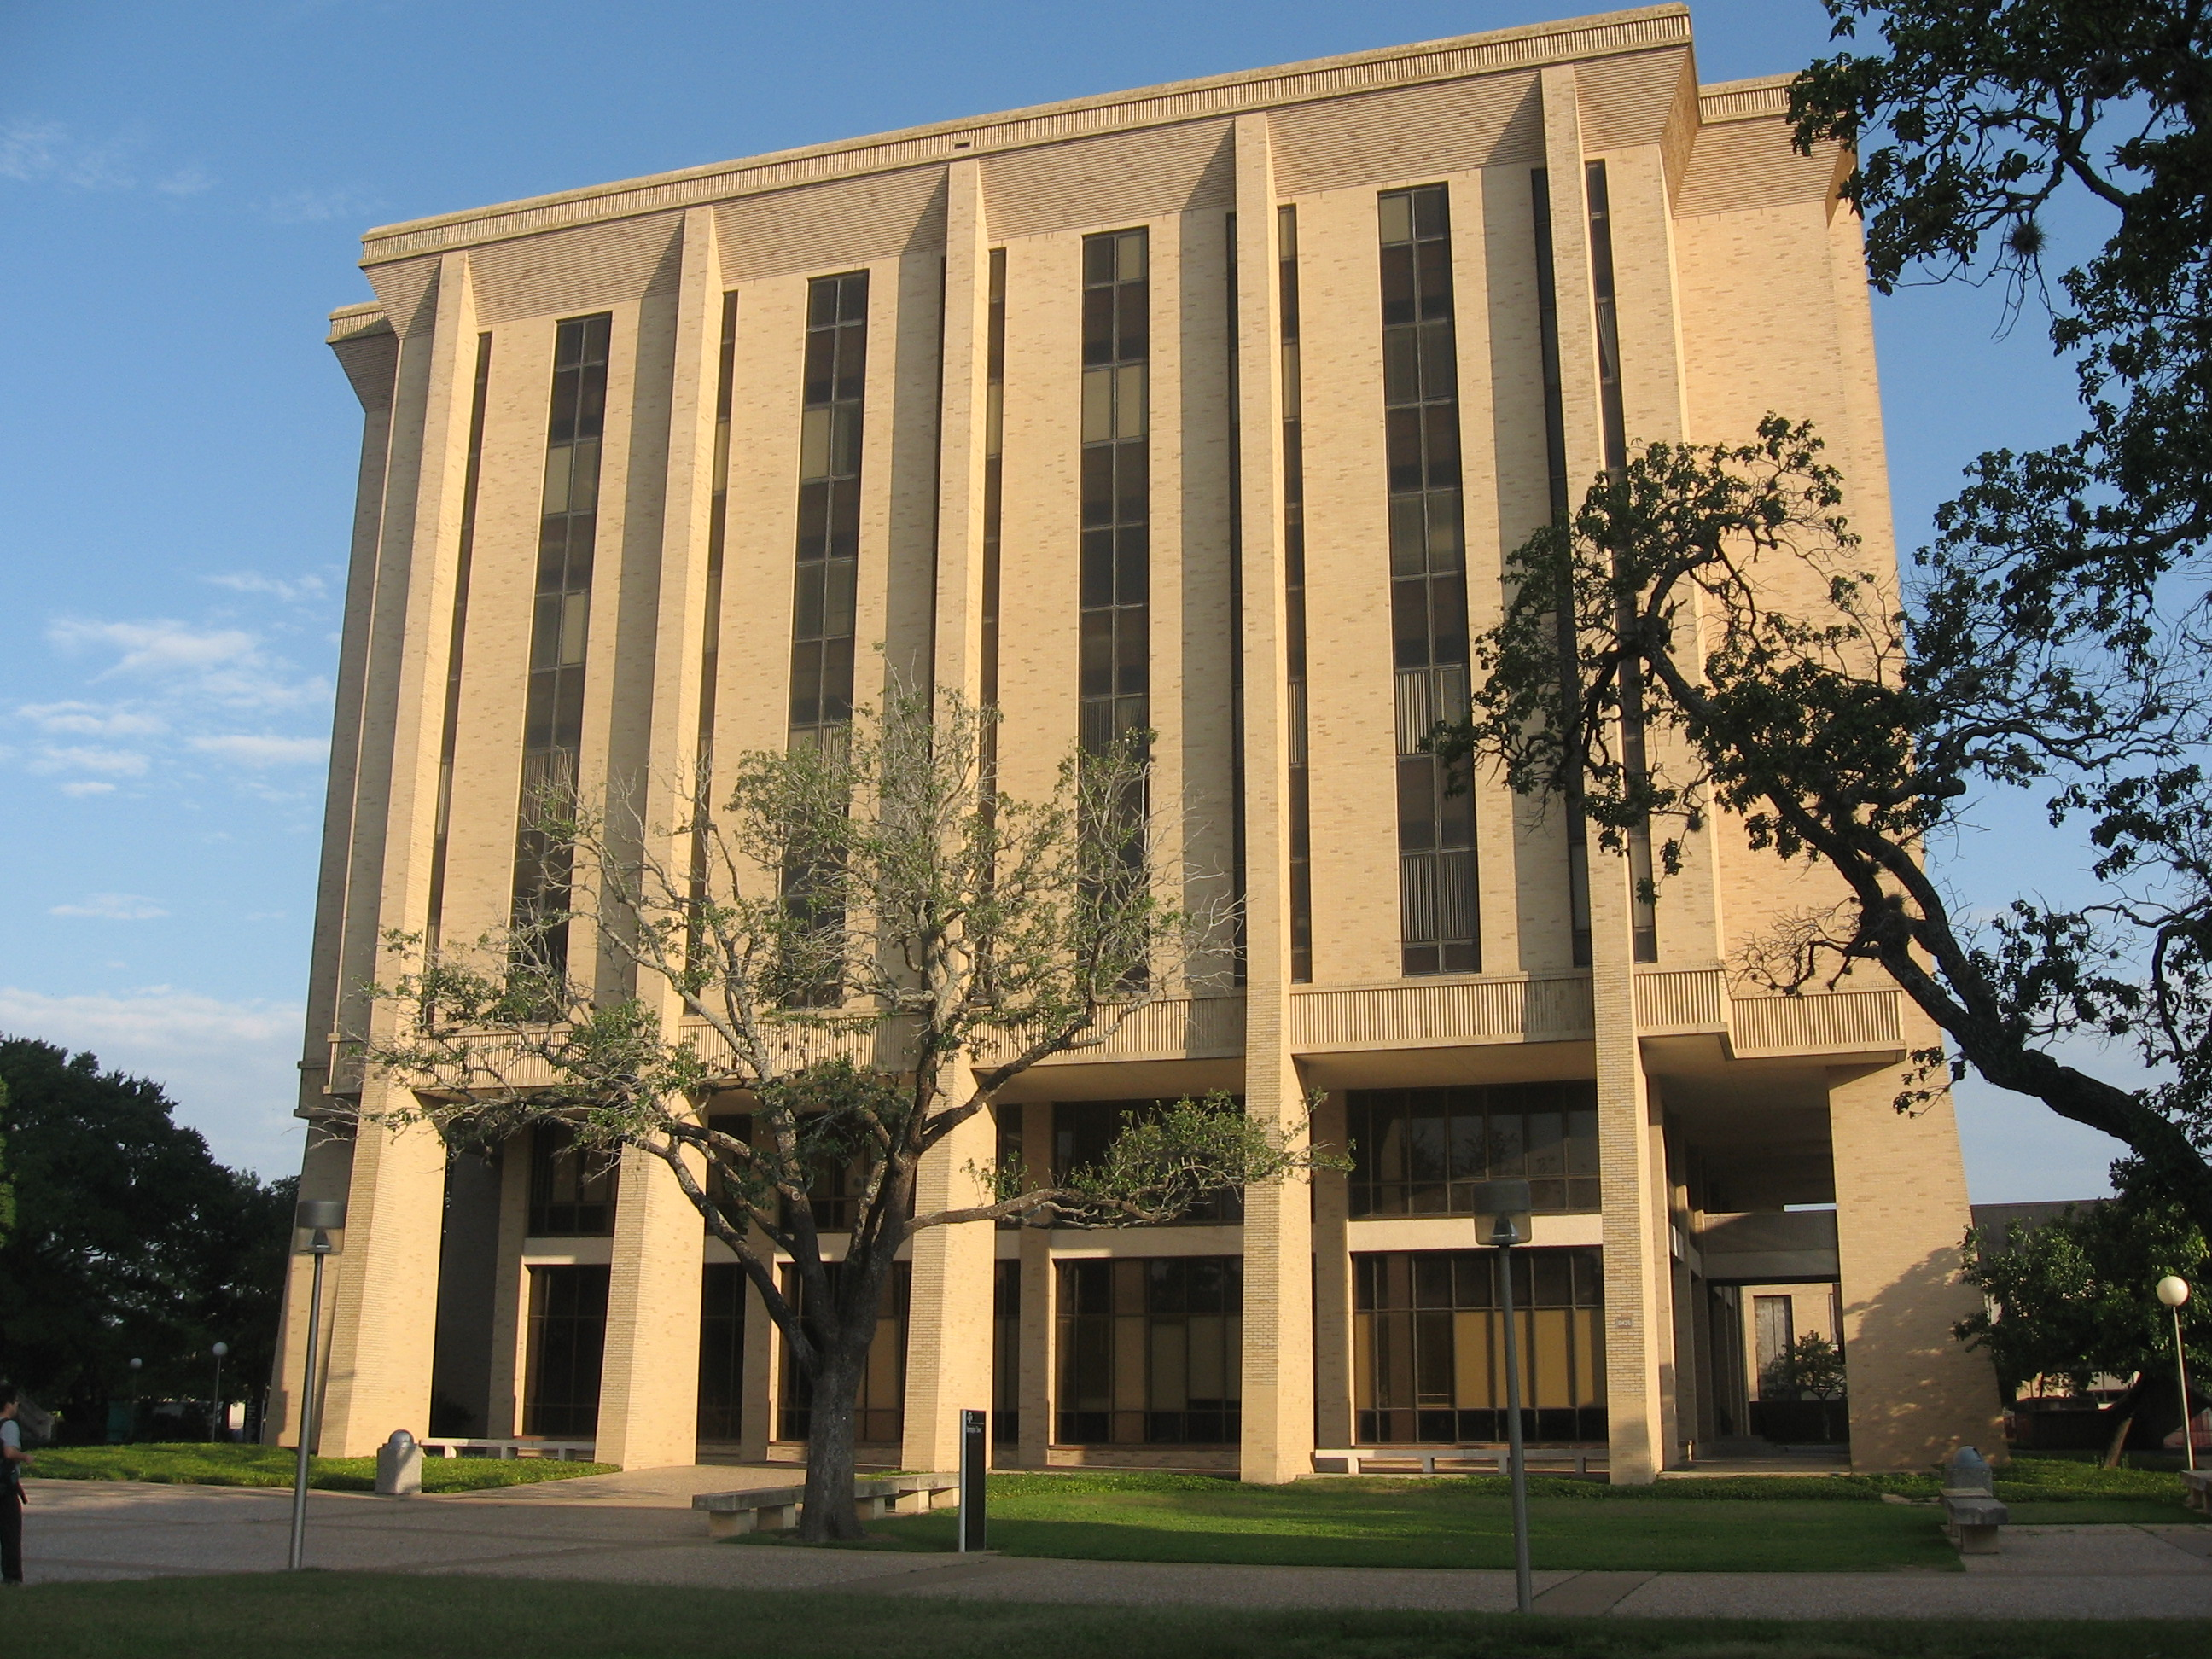 image of Texas A&M University